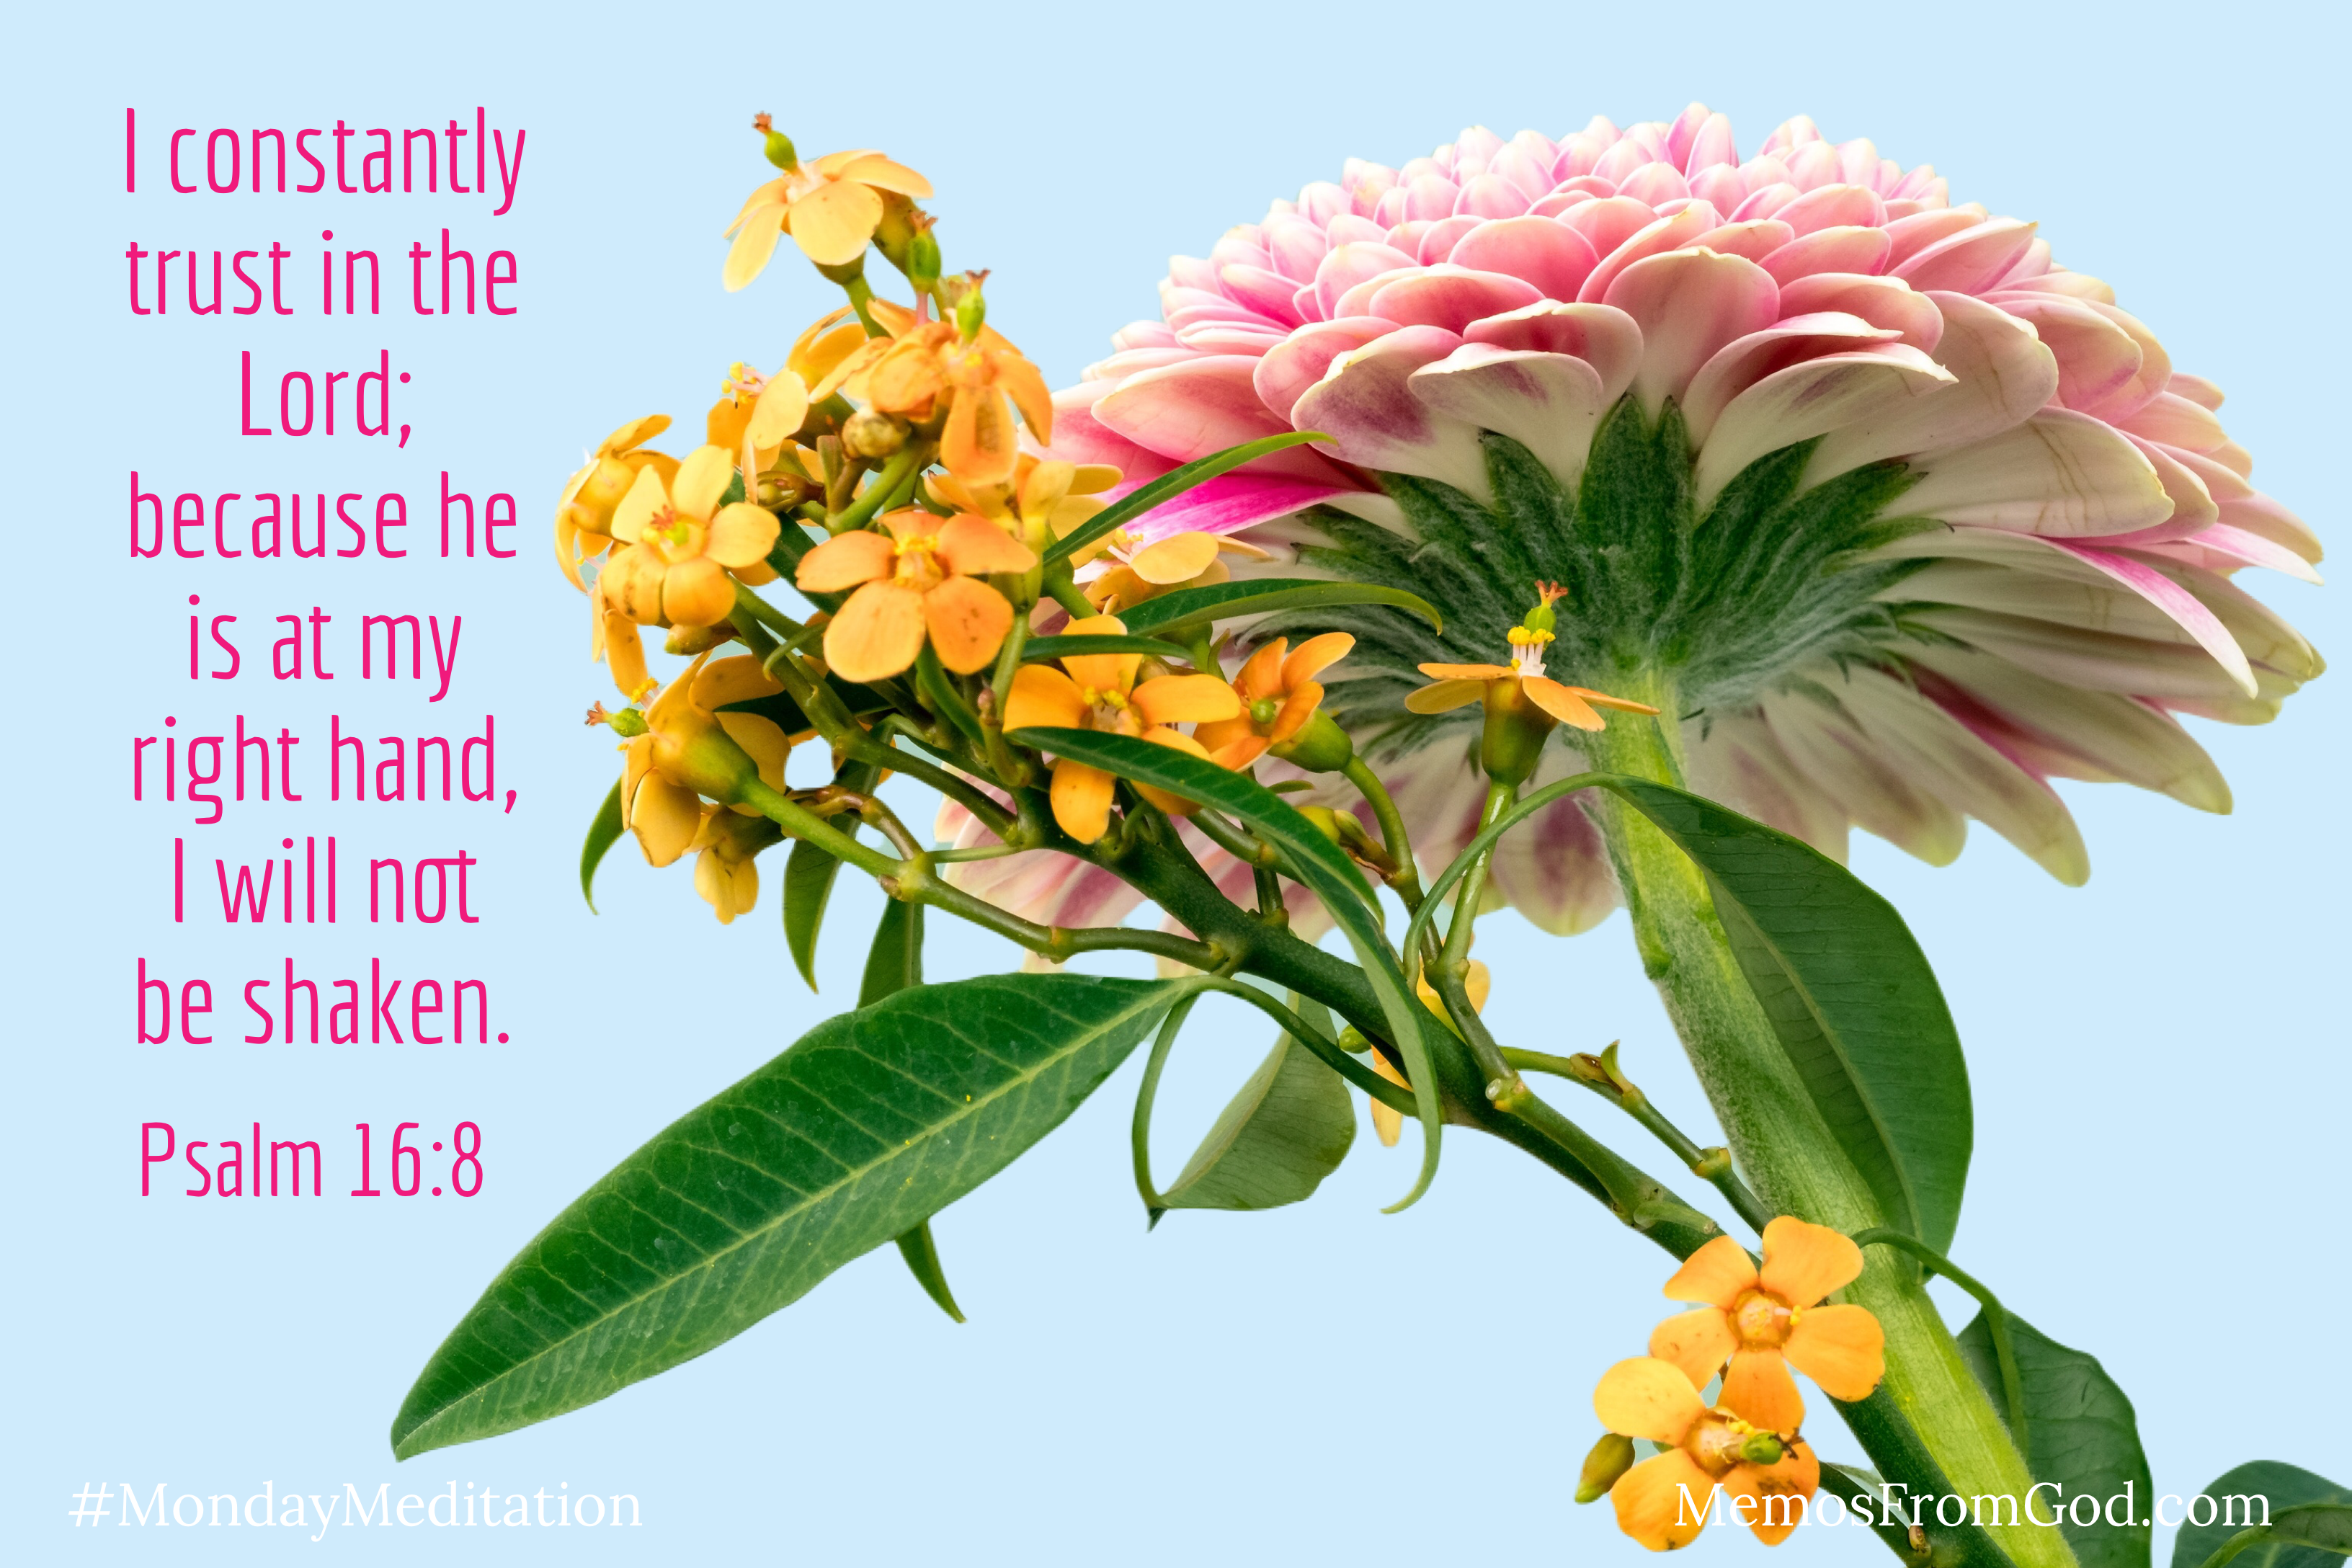 One large pink flower with a stalk of small yellow flowers on a blue background. Caption: I constantly trust in the Lord; because he is at my right hand, I will not be shaken. Psalm 16:8